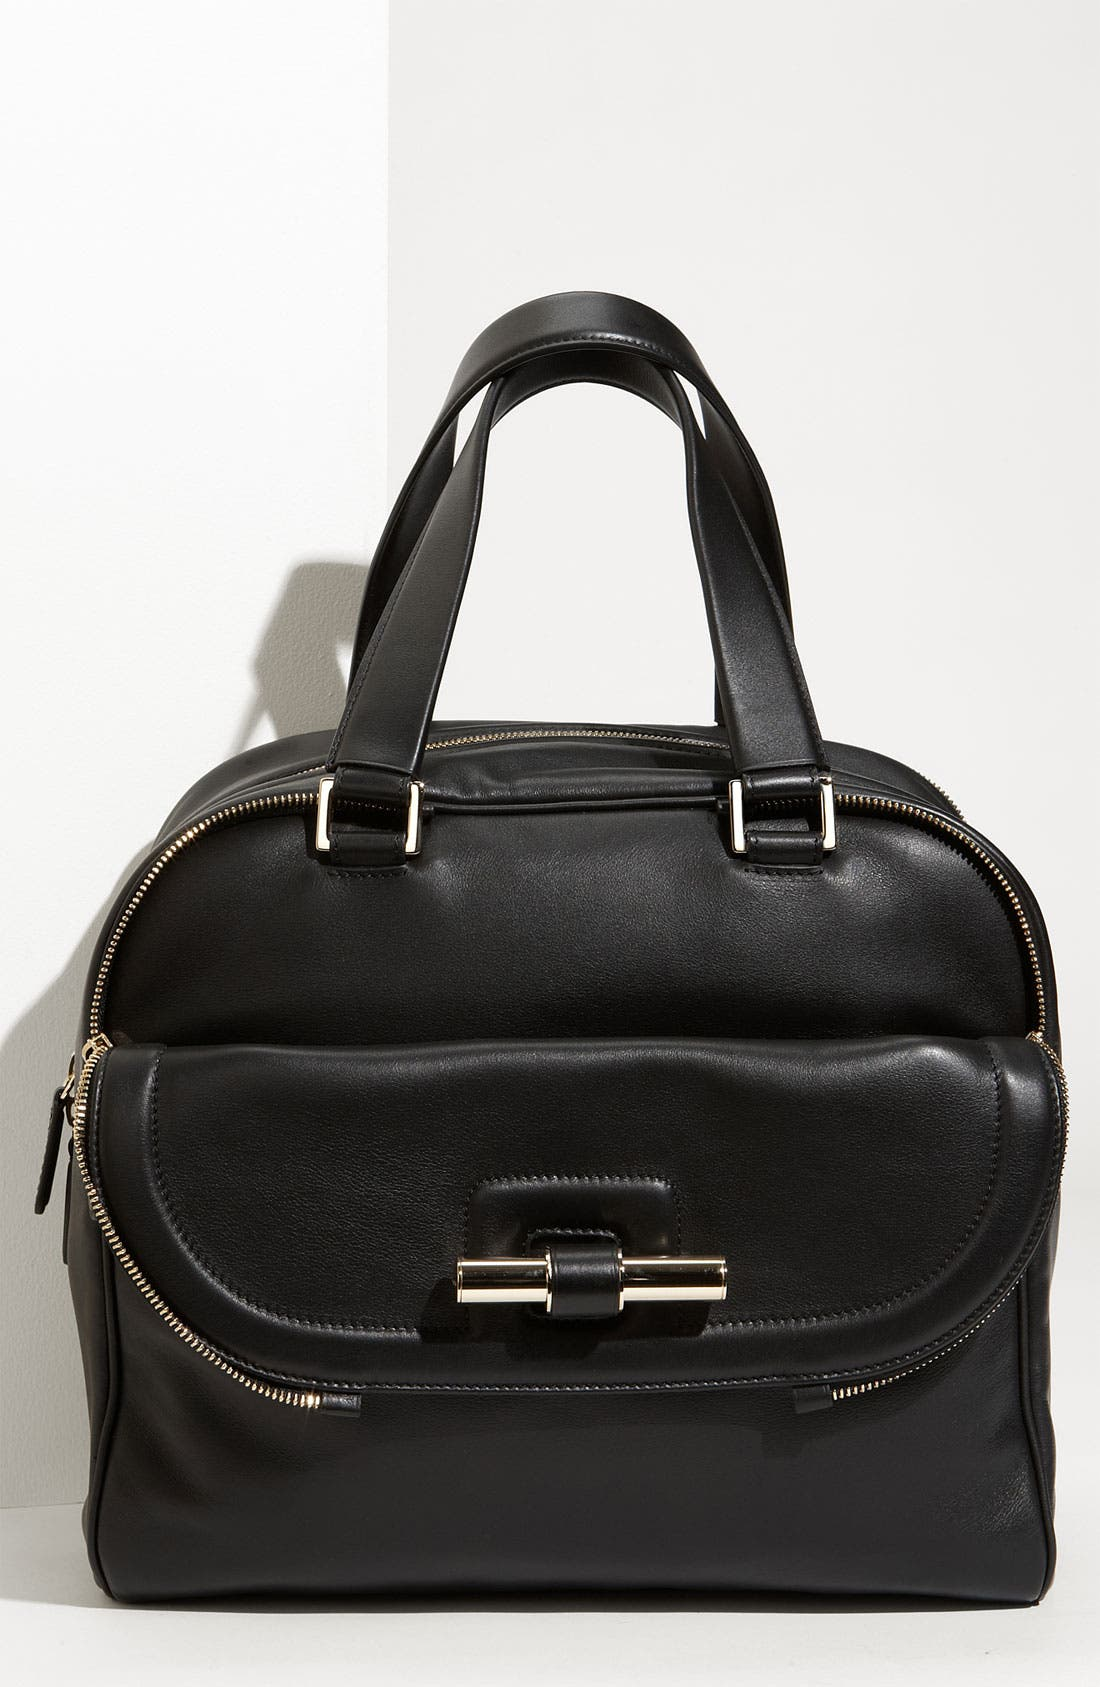 Alternate Image 1 Selected - Jimmy Choo 'Justine - Large' Leather Satchel